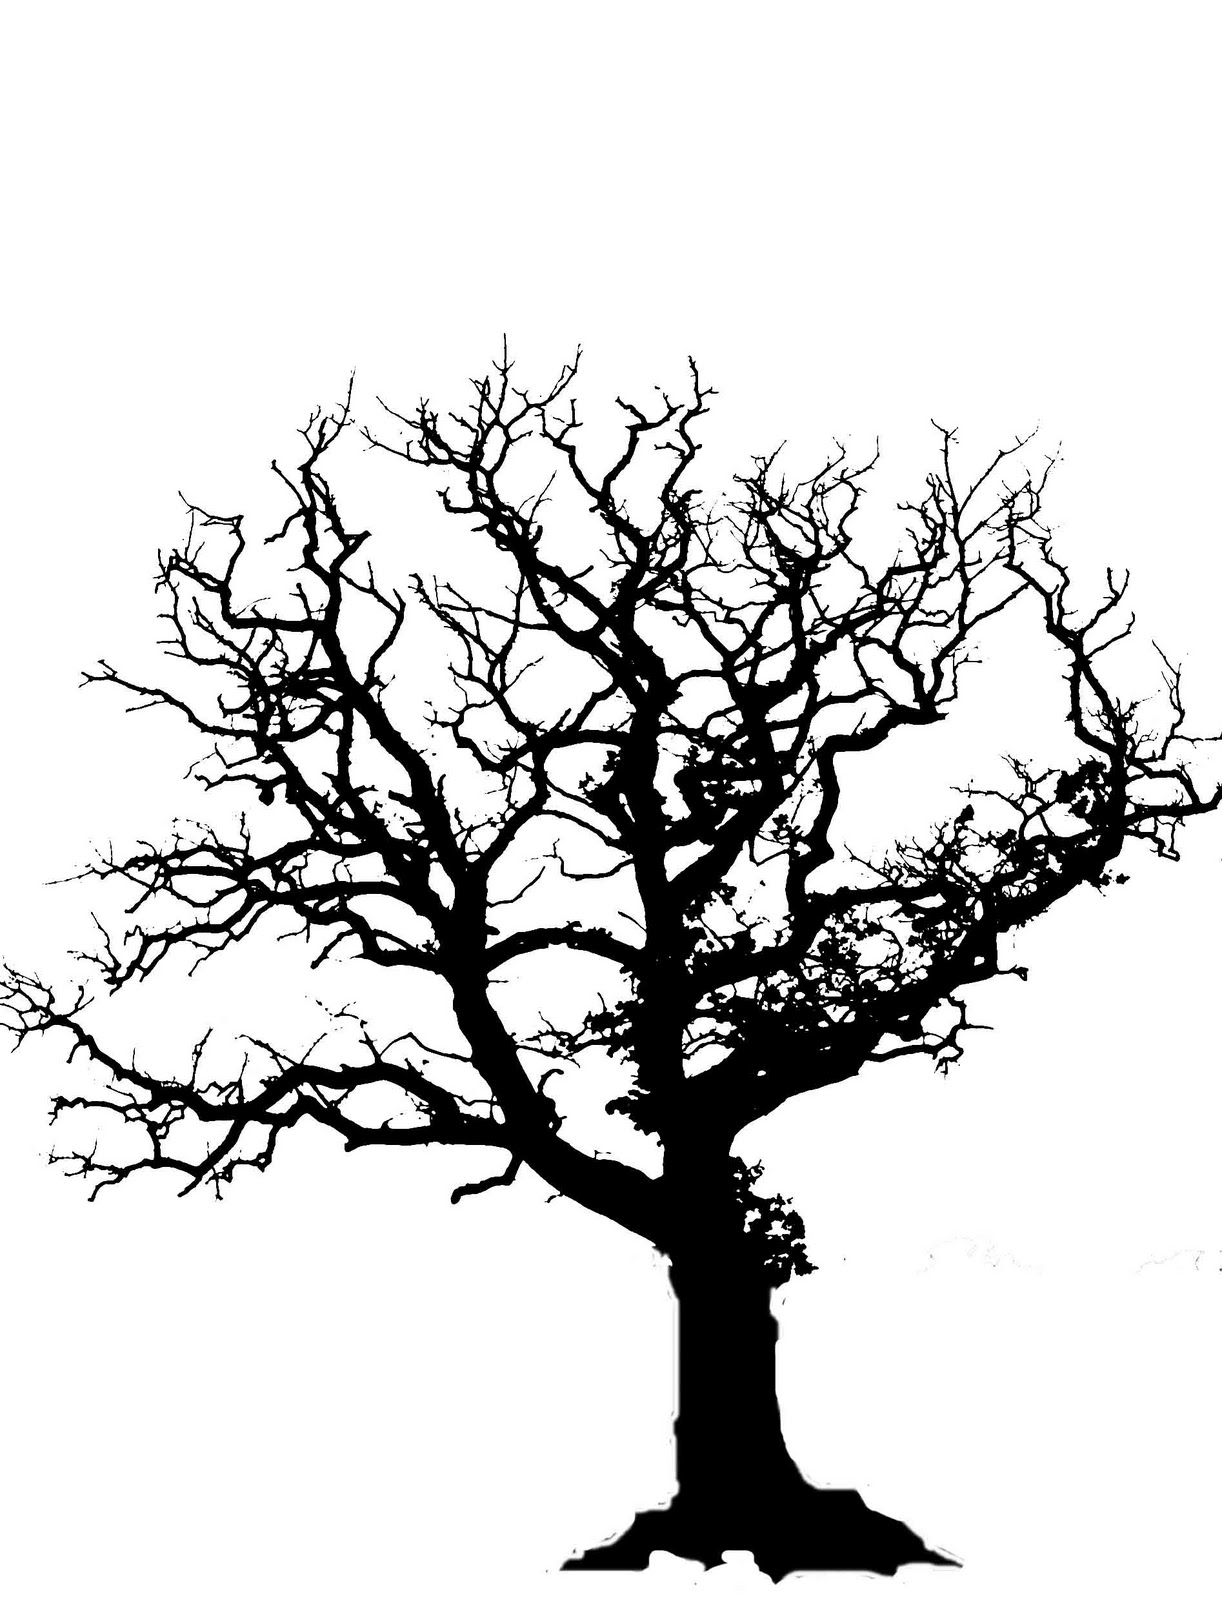 Sunset water oak tree clipart black and white.